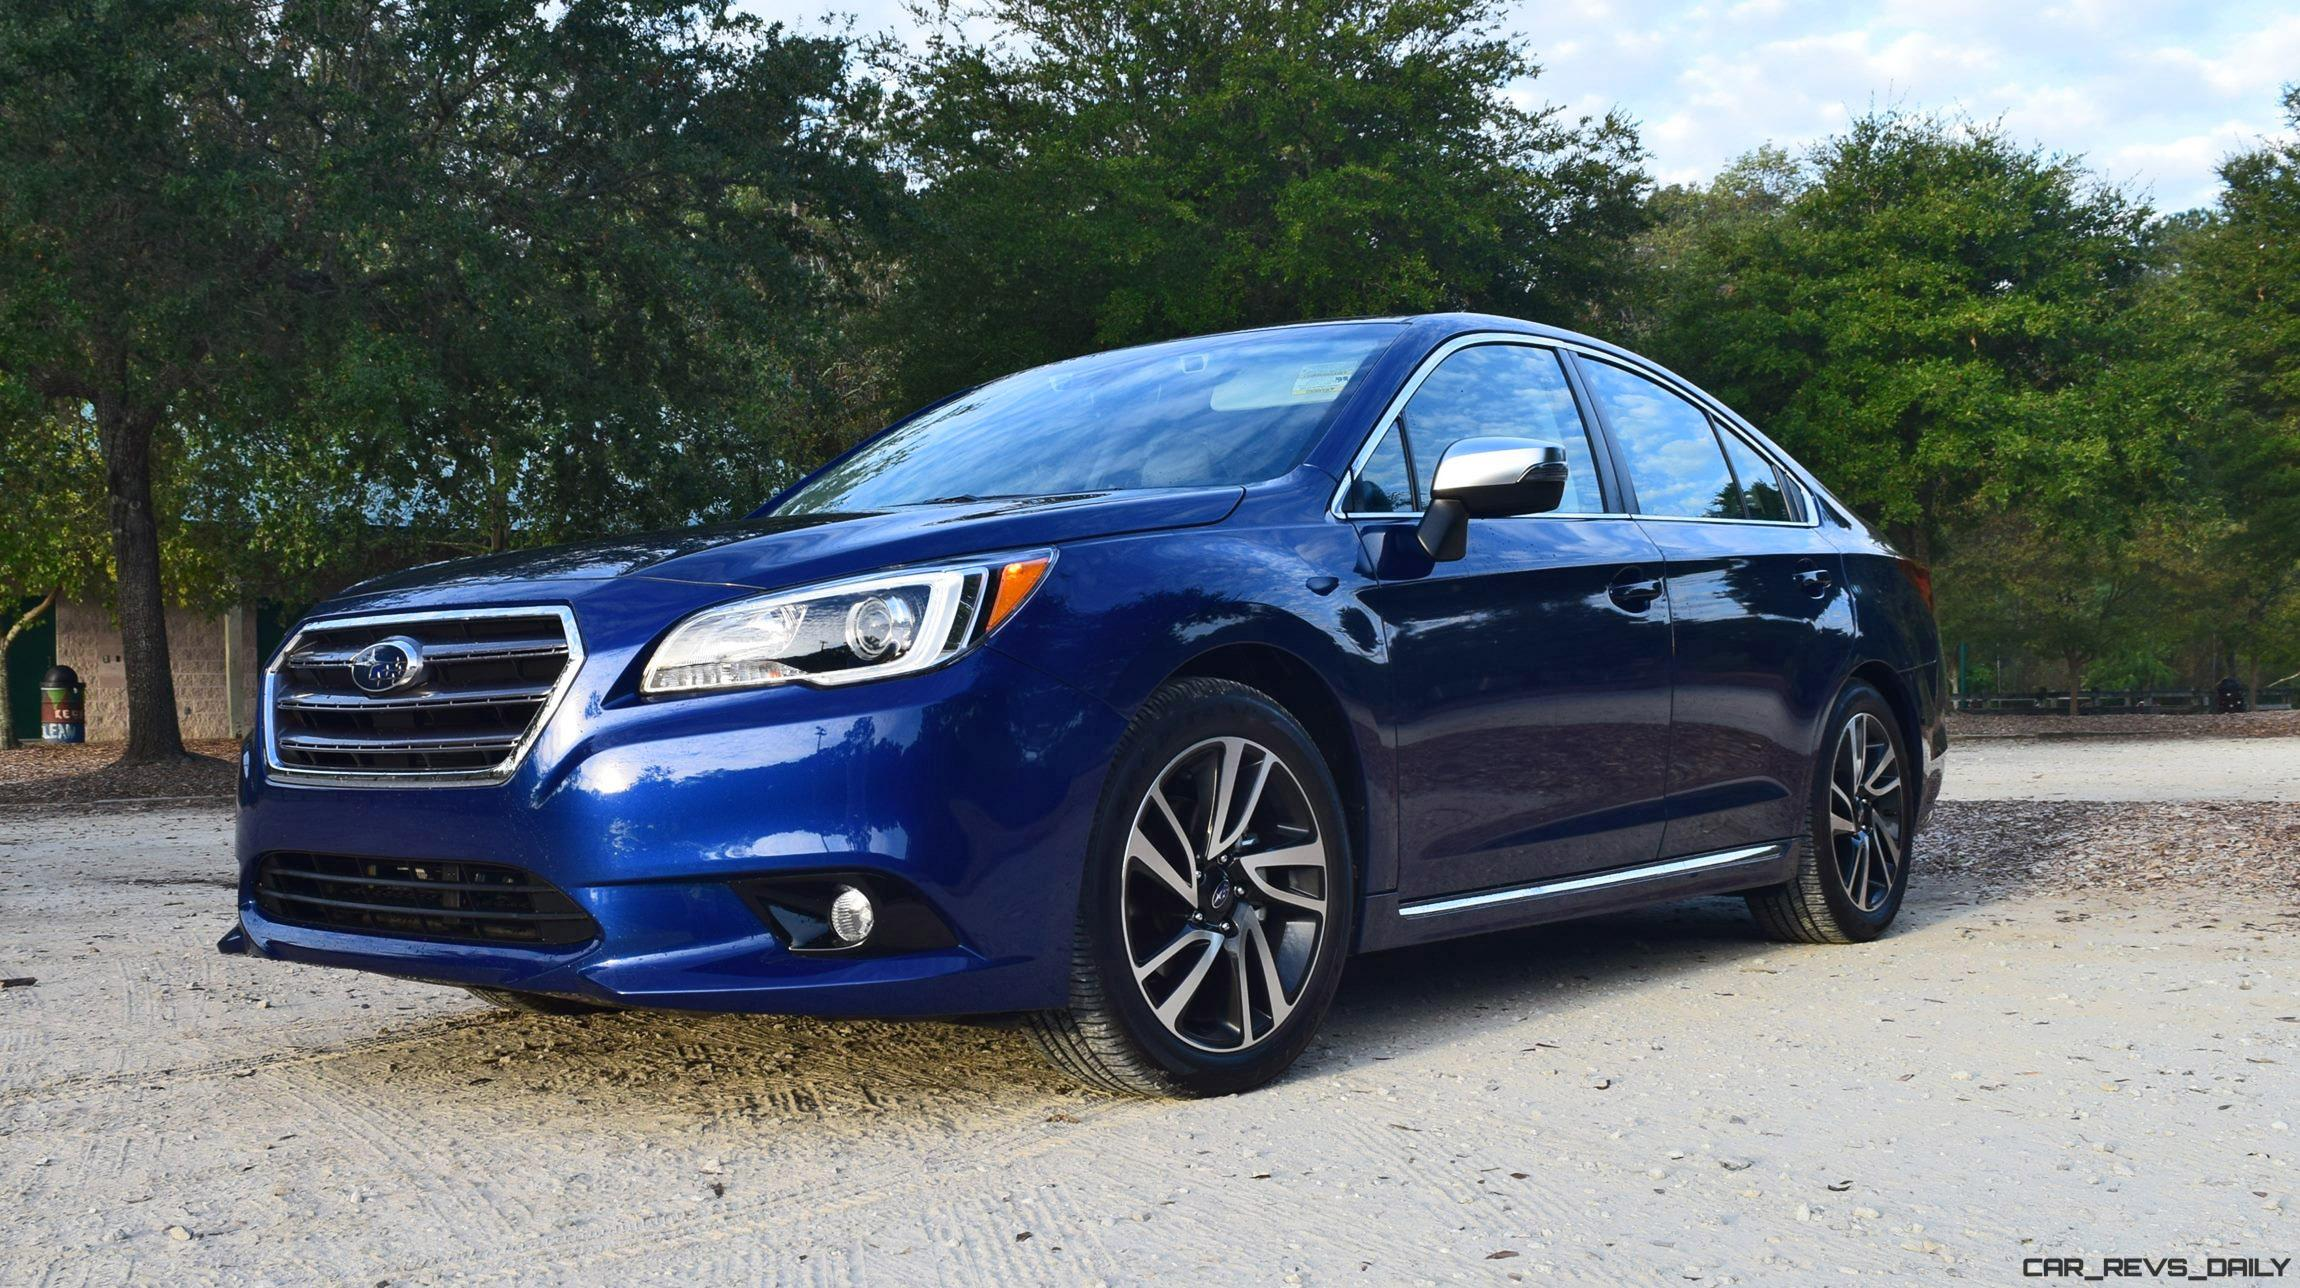 2017 Subaru Legacy 2.5i SPORT - HD Road Test Review